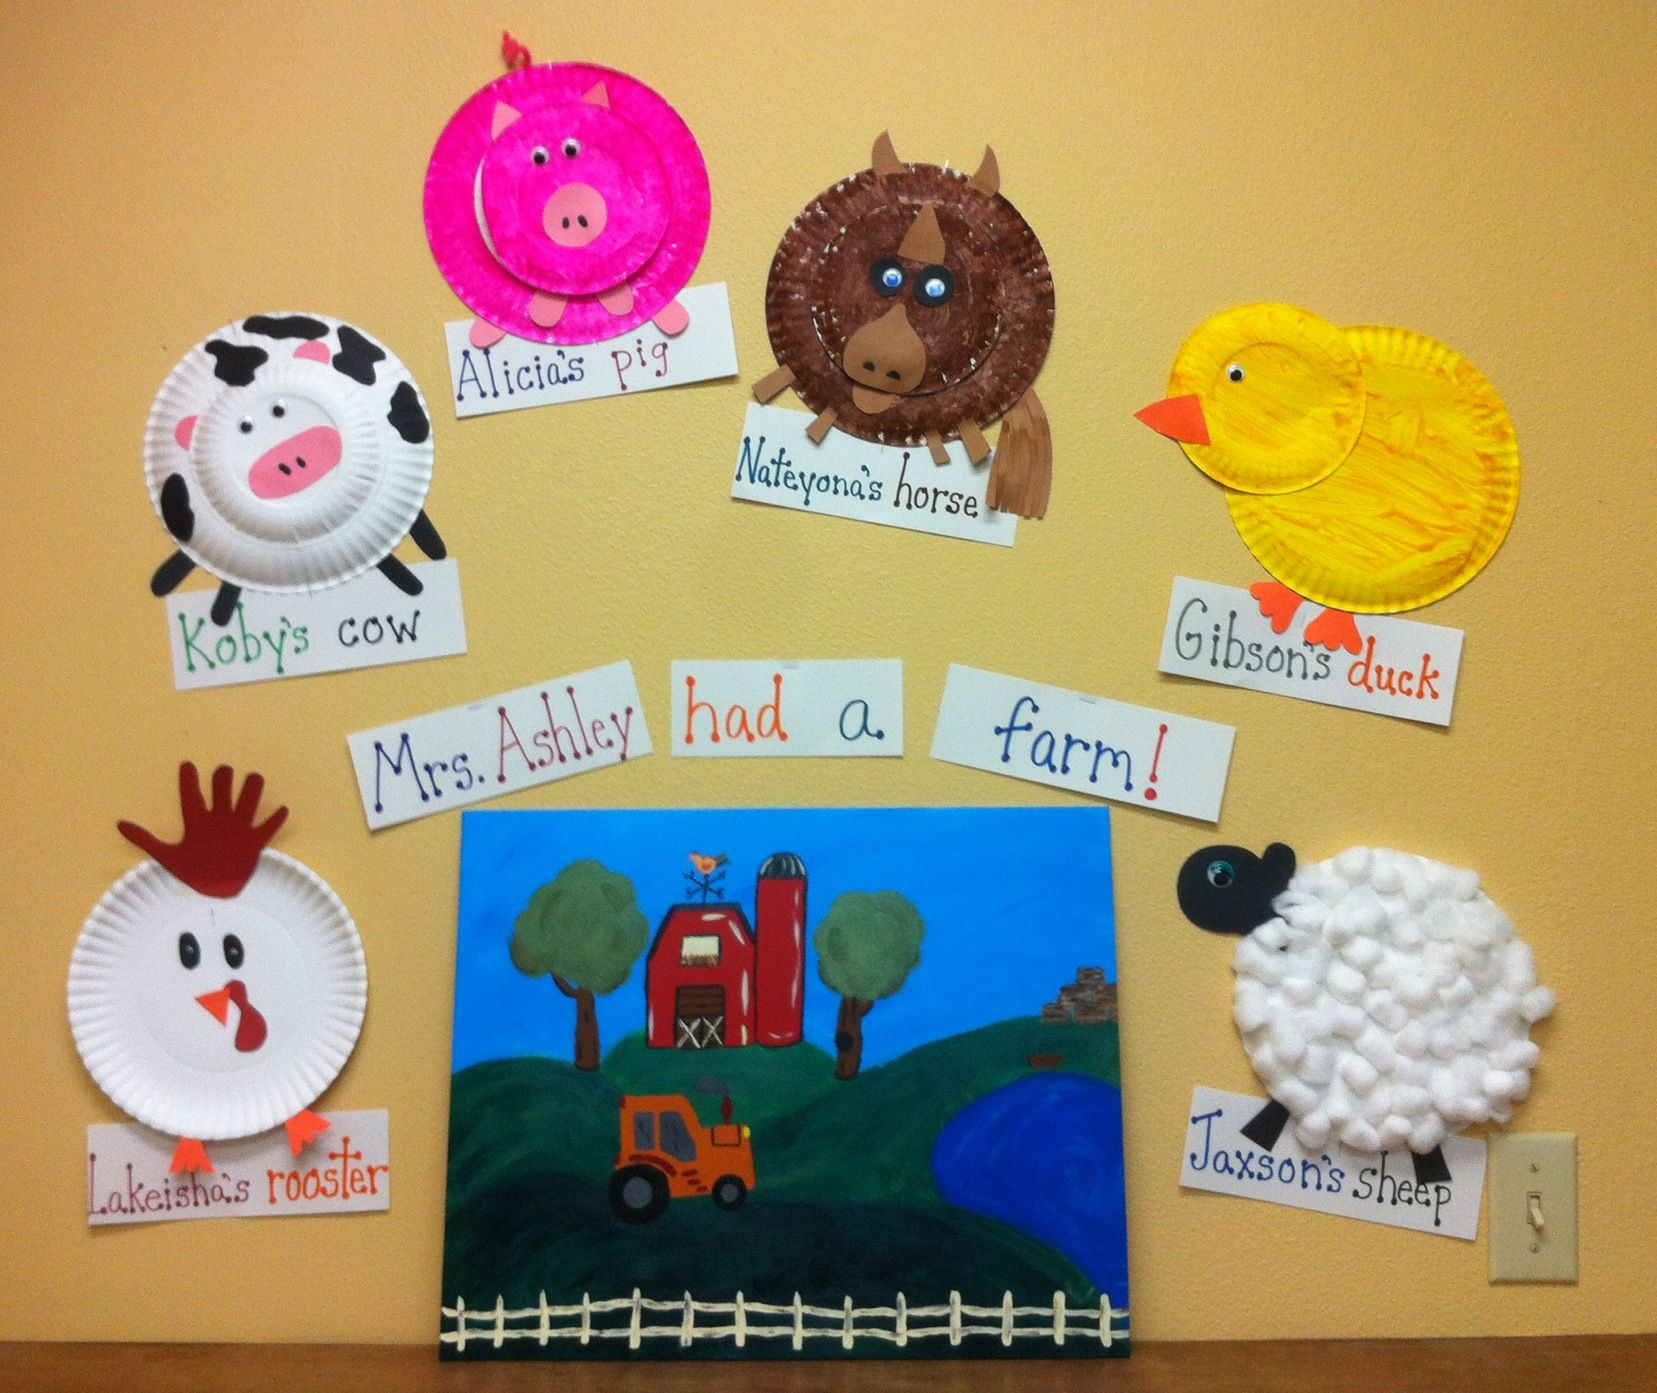 Preschool Had A Farm The Kids Each Made A Farm Animal Rooster Cow Pig Horse Duck